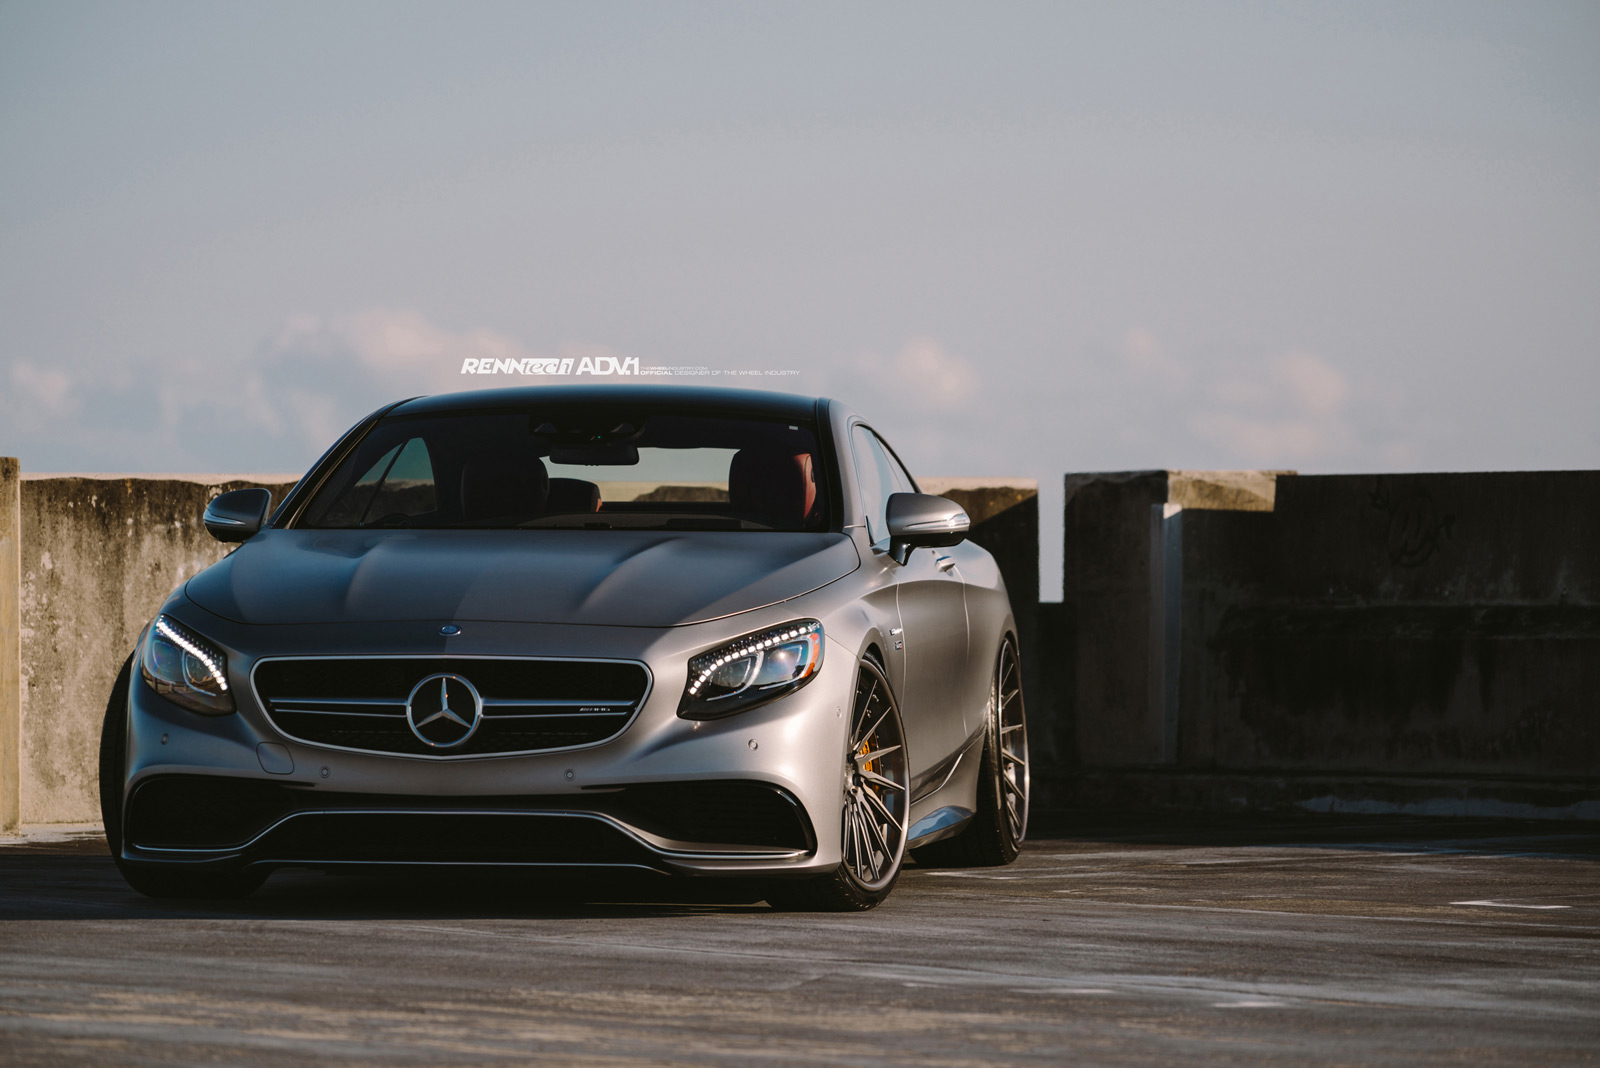 Renntech Powered S63 Amg Coupe Merc Poses On Adv1 Wheels 39 Pics